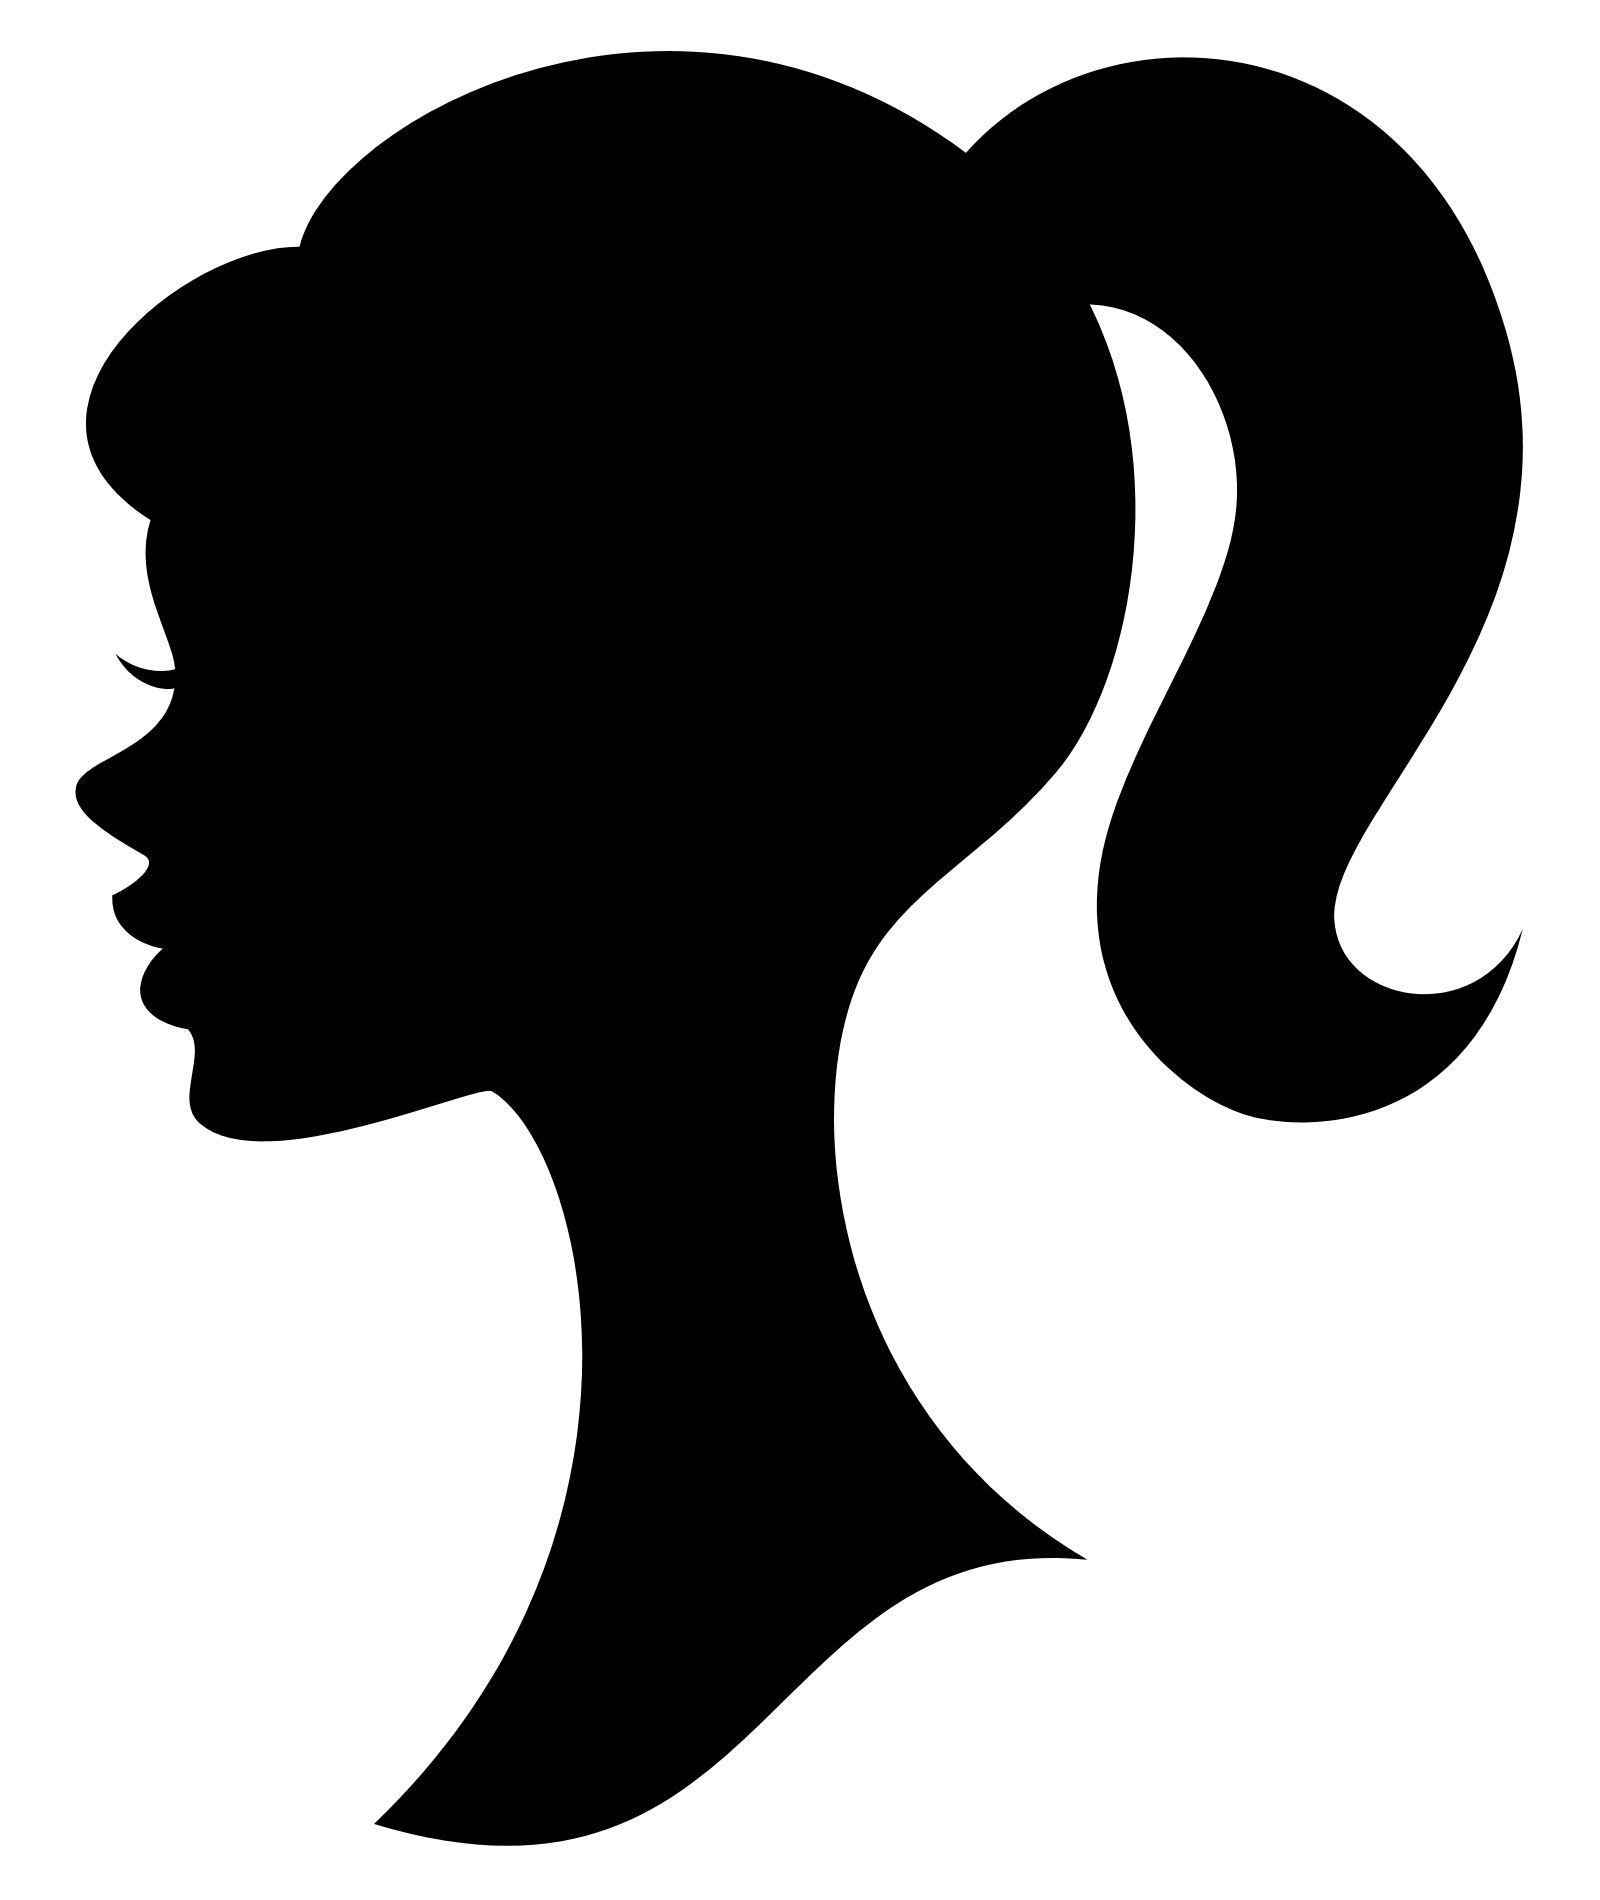 1600x1900 Cricut Barbie Head Barbie Silhouette Barbie Princess Movies